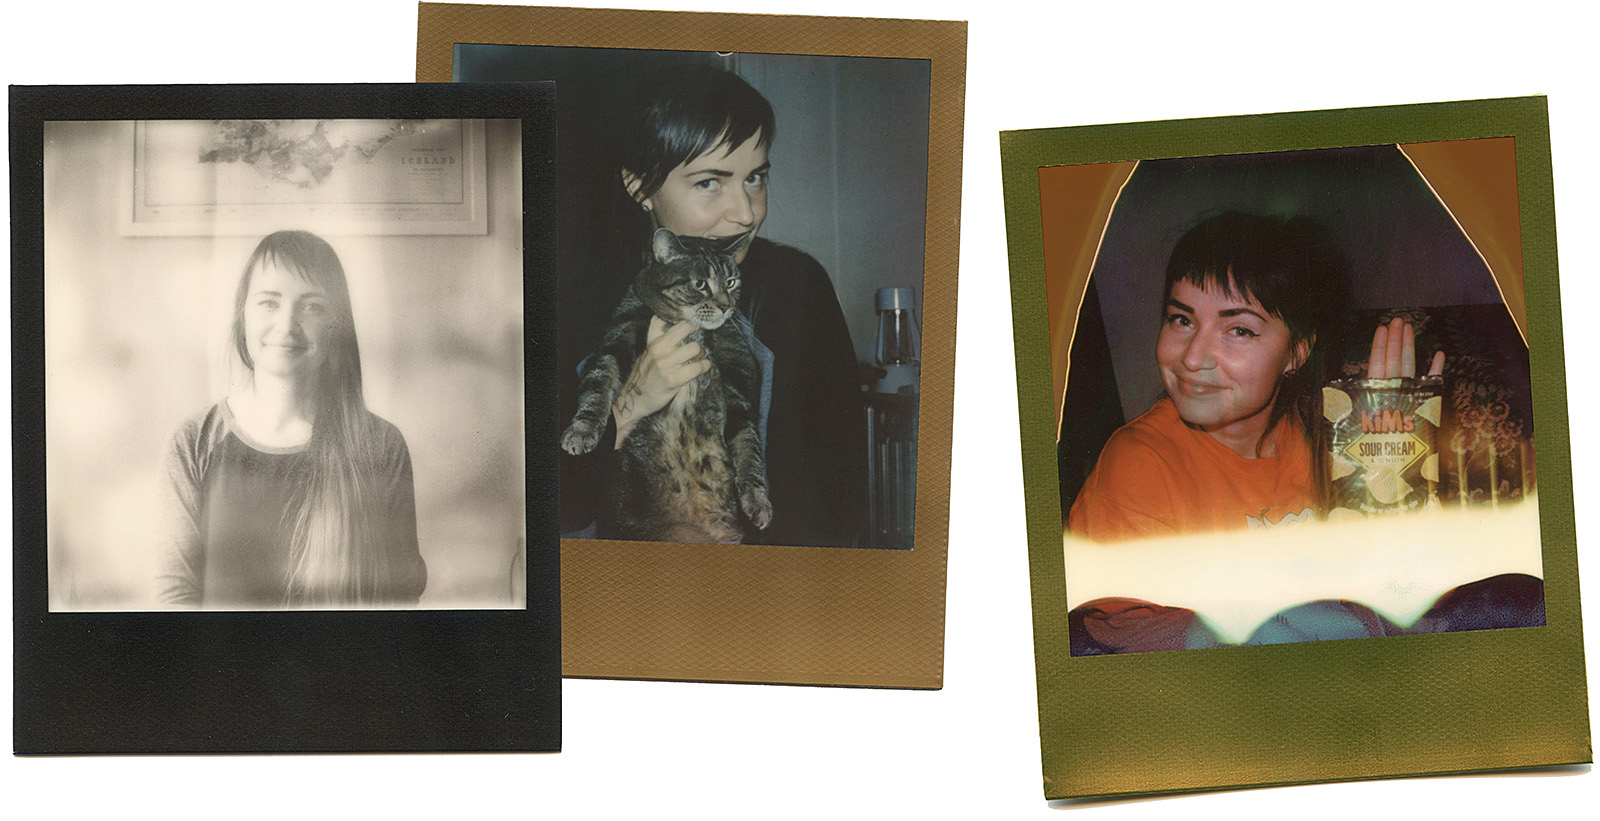 Polaroid photographs of Portland wedding photographer Kim Smith-Miller